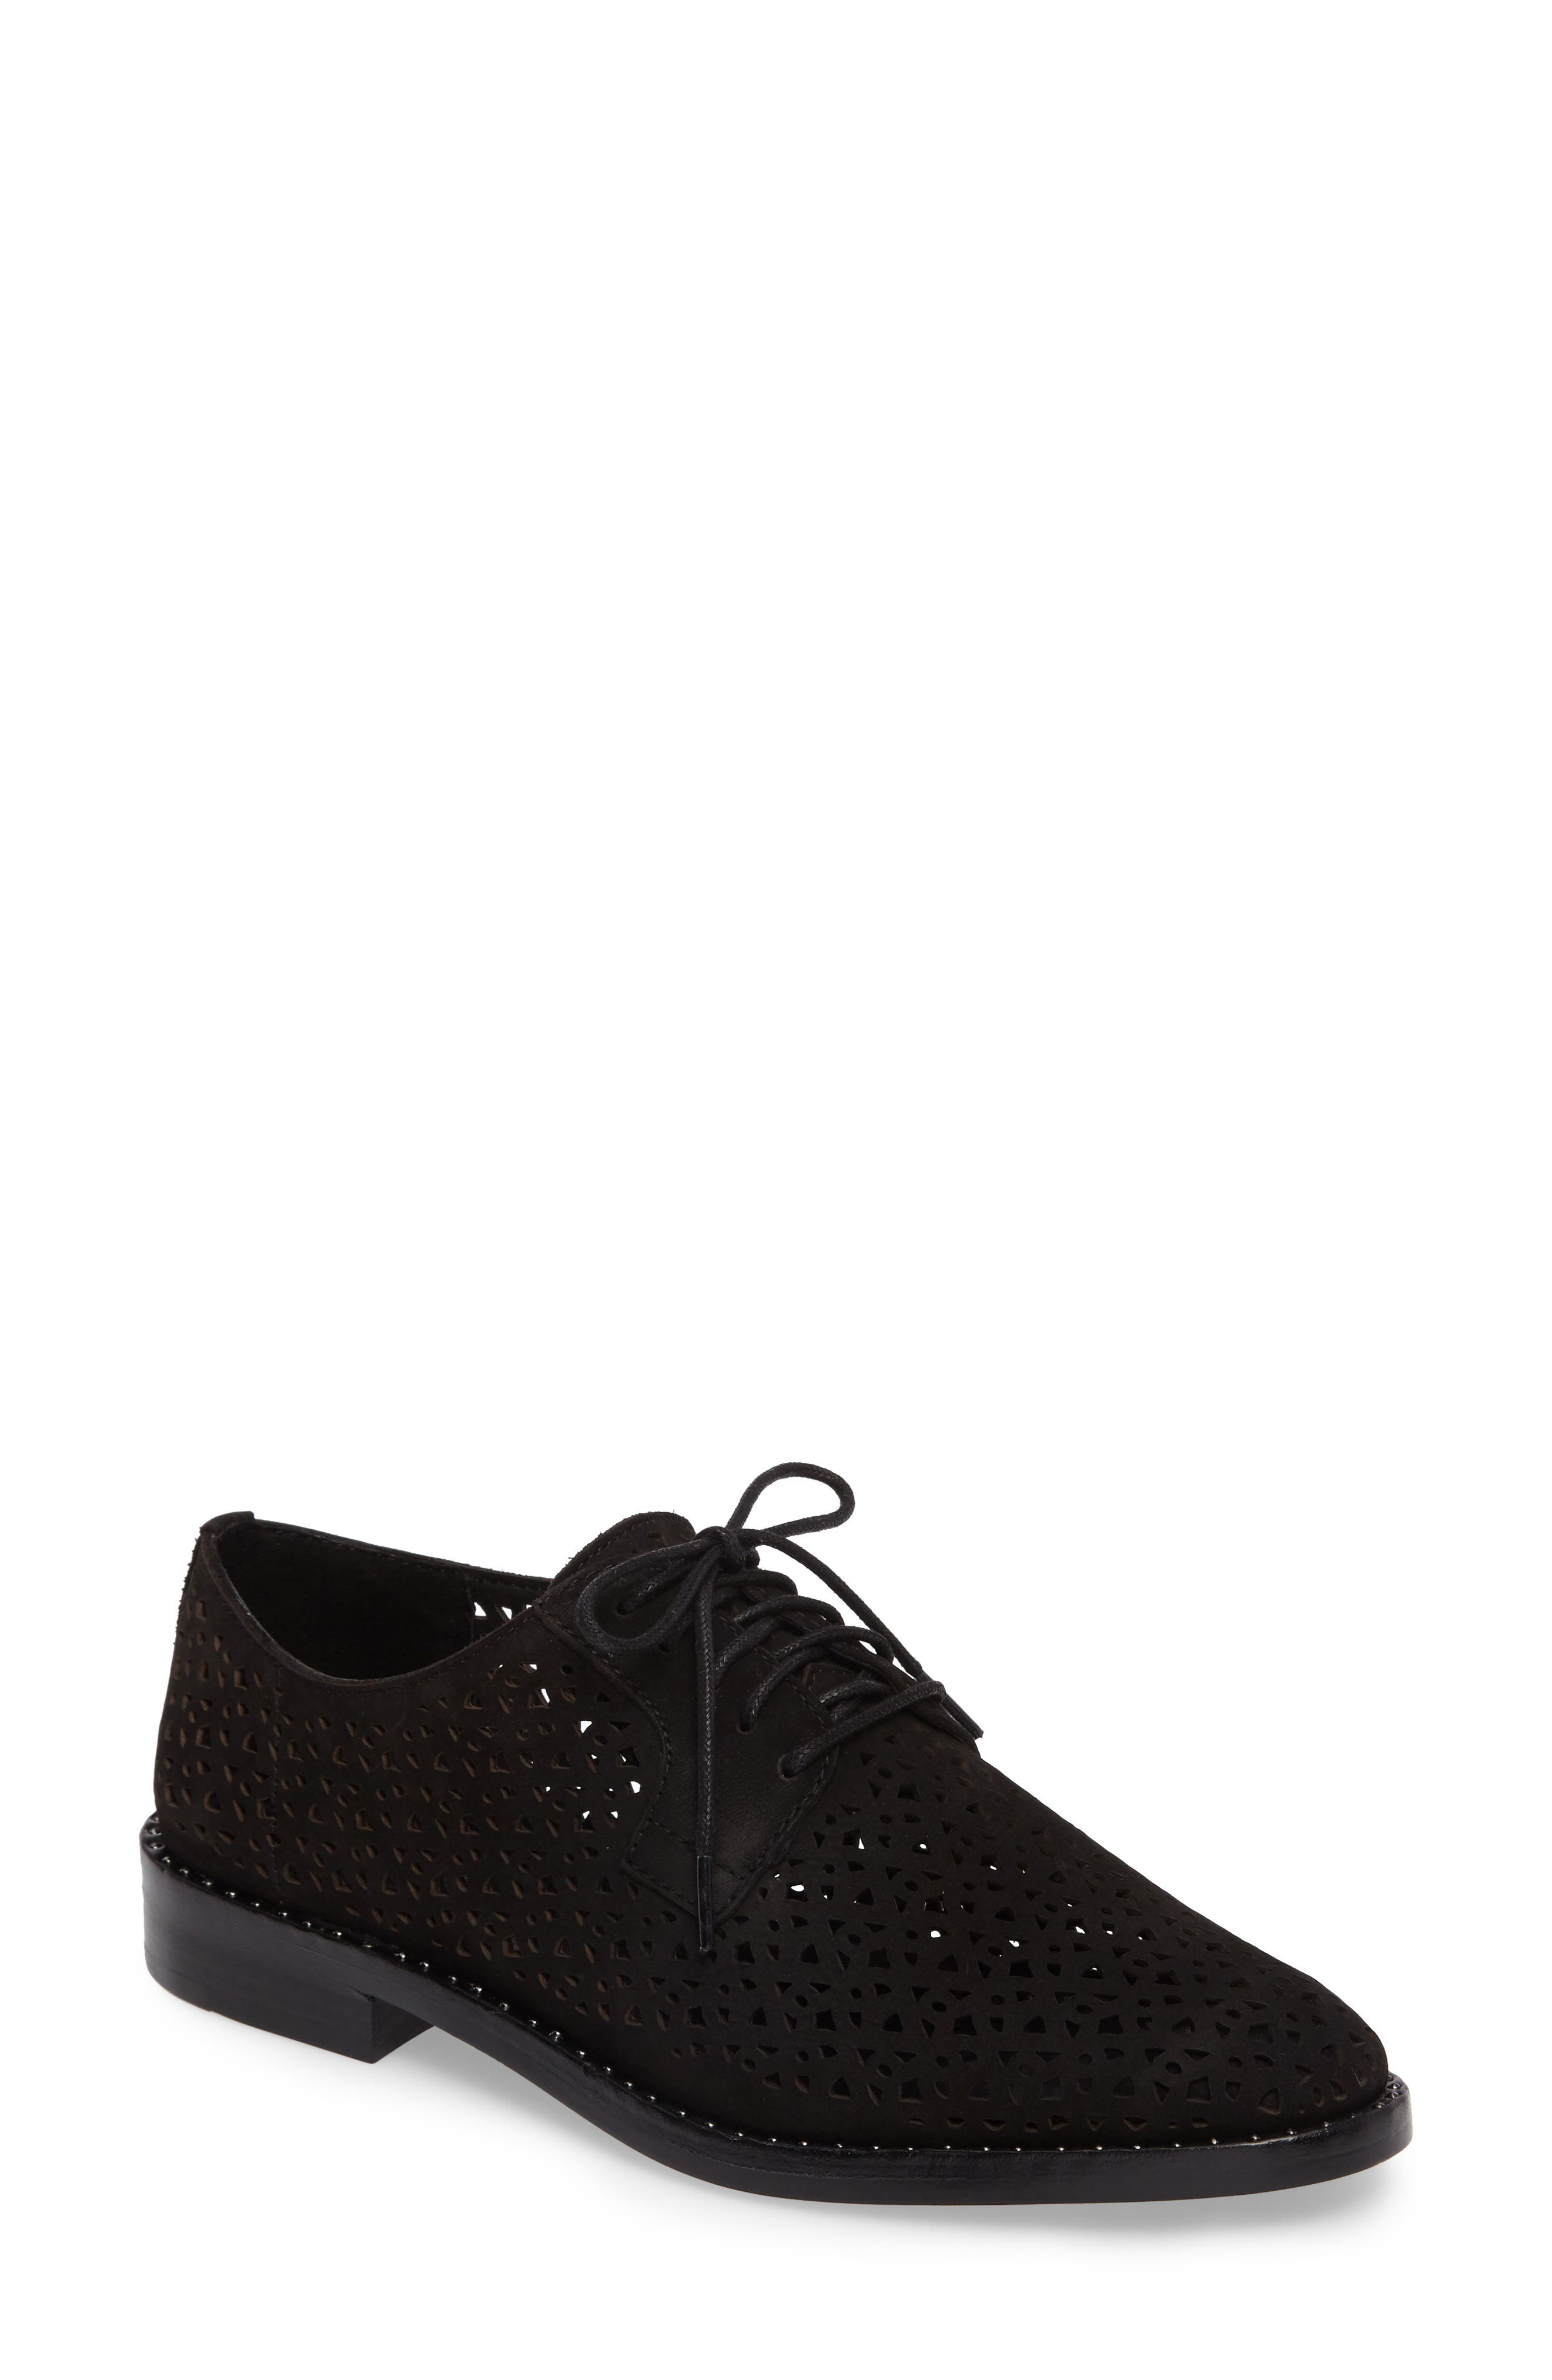 Lesta Geo Perforated Oxford,                             Main thumbnail 1, color,                             001